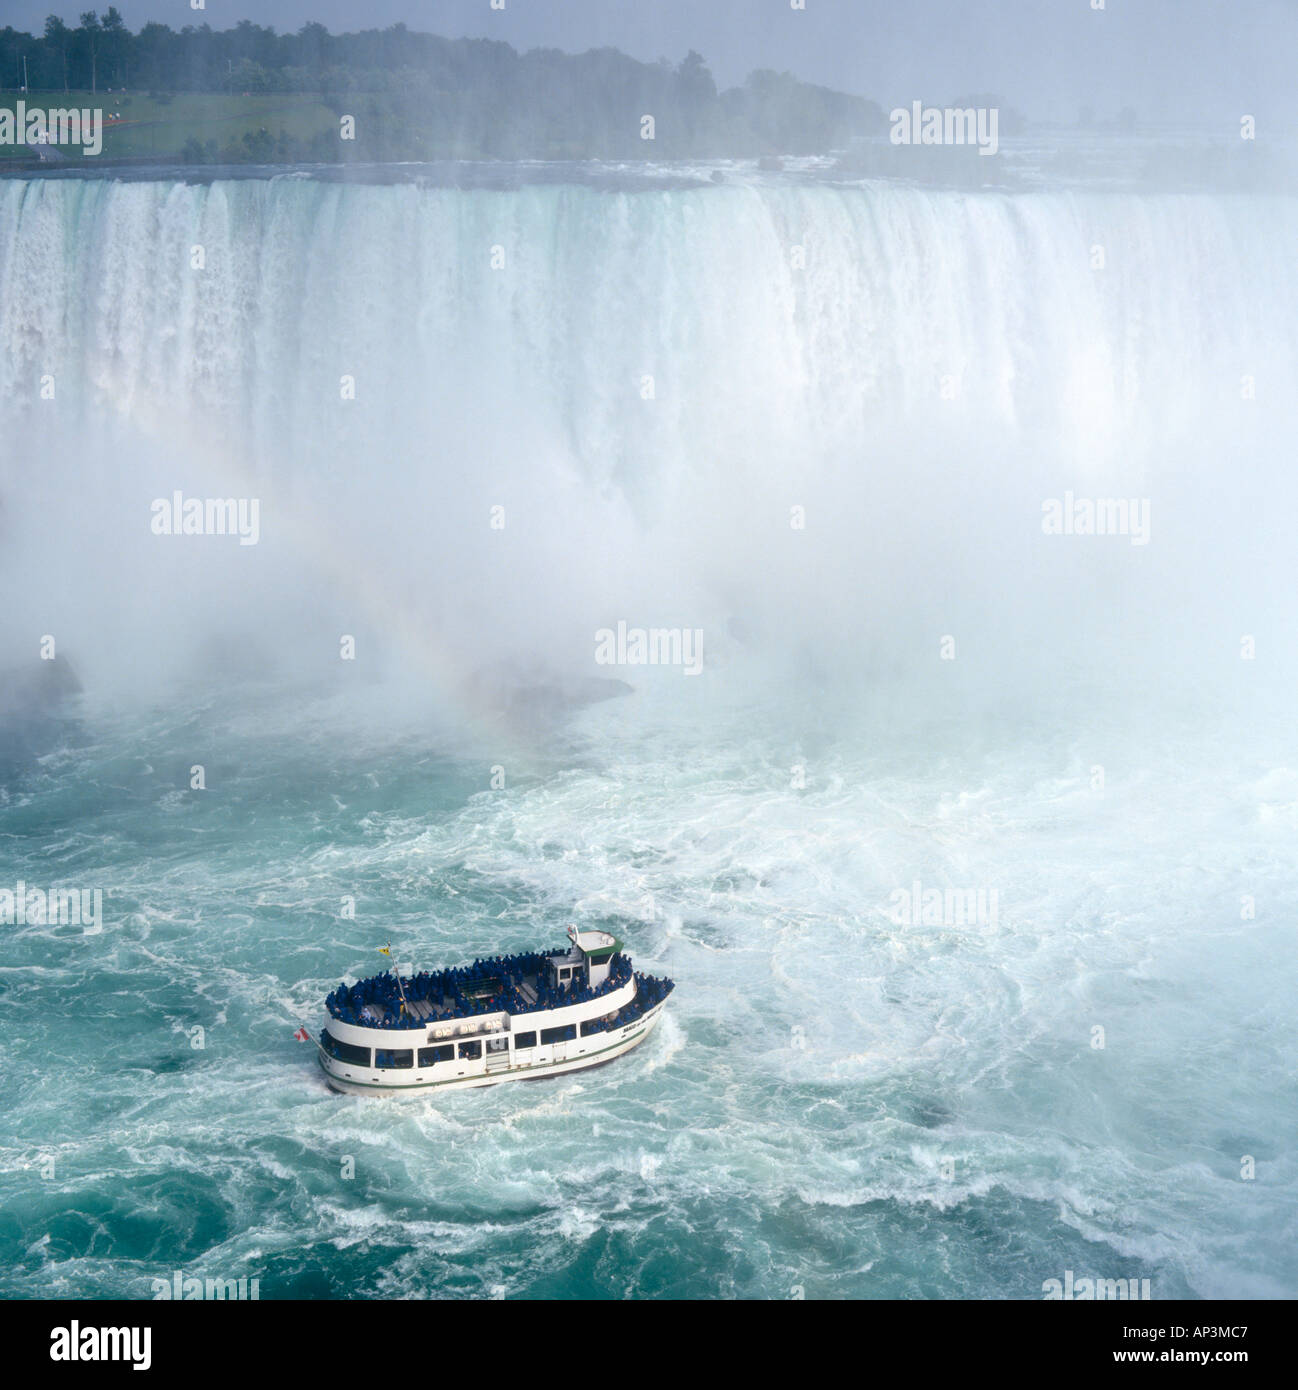 Maid of the Mist Cruise Boat, Niagara Falls, Ontario, Canada - Stock Image